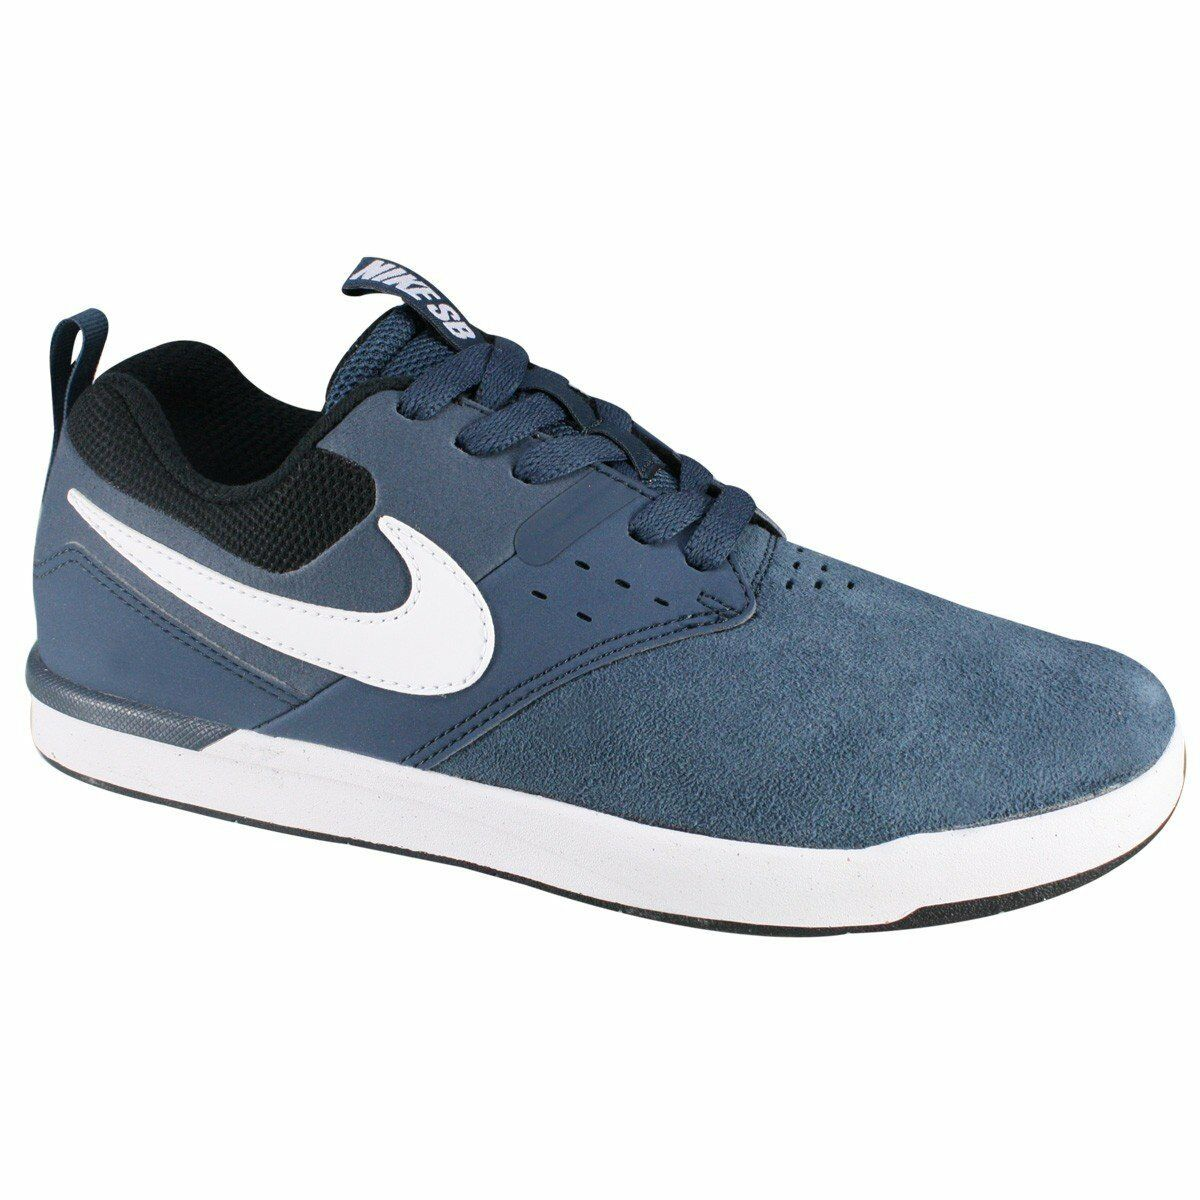 NIKE SB ZOOM EJECTA Suede Leather Trainers Casual Retro - bleu - Various Sizes